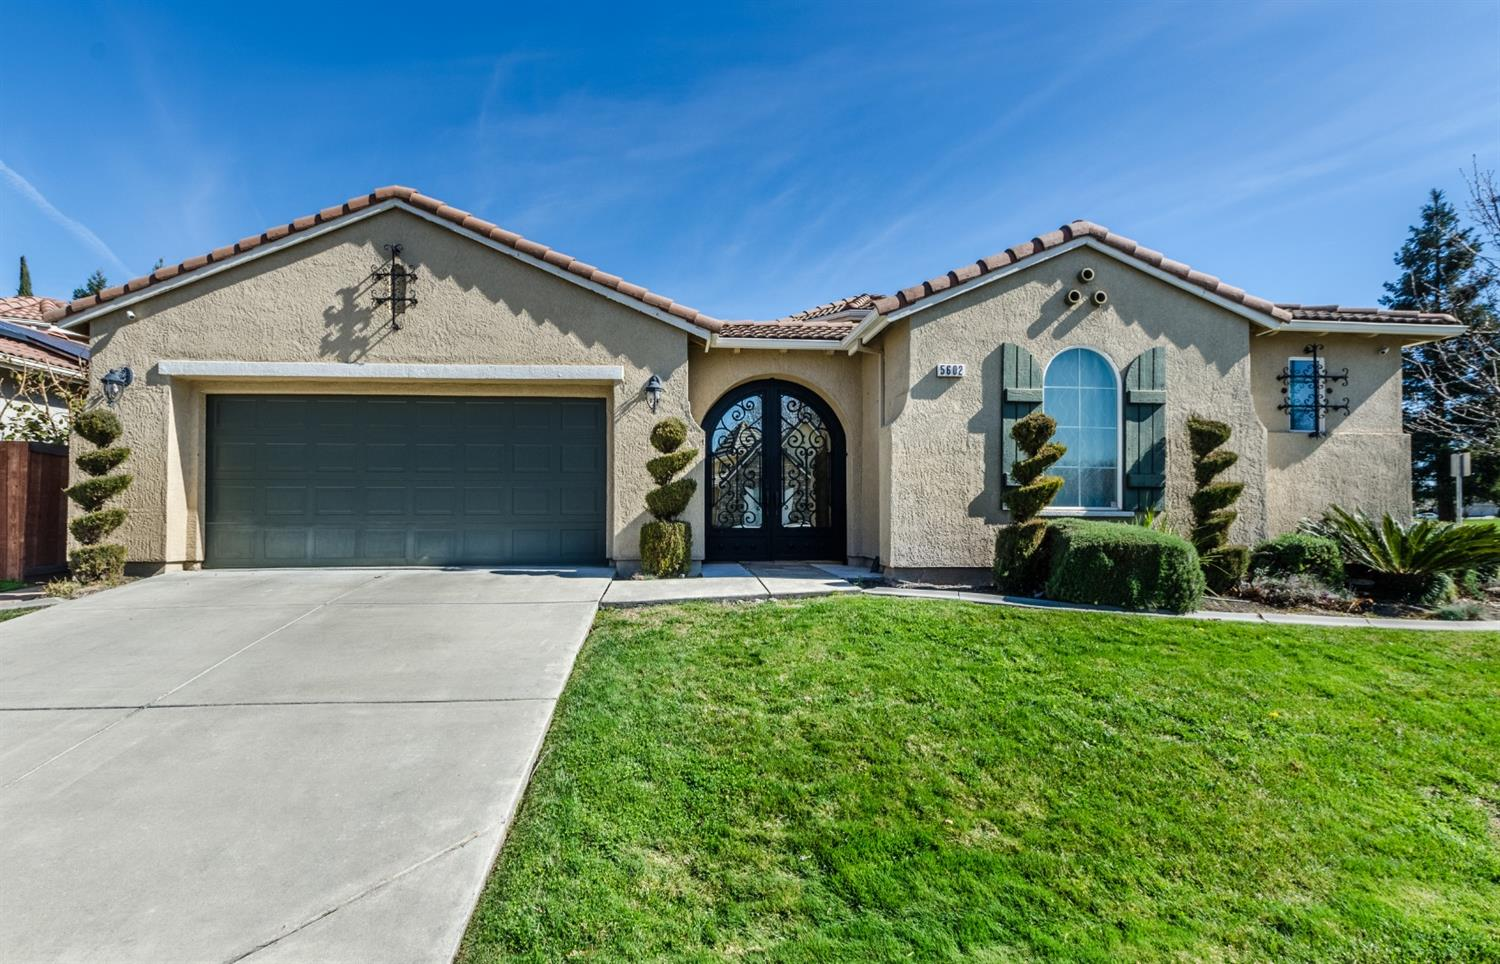 A cozy- one story home, located in the heart of the Natomas area. On a corner and across the street from a friendly park. This home has 4 bedrooms, 3 baths with nice upgrades.